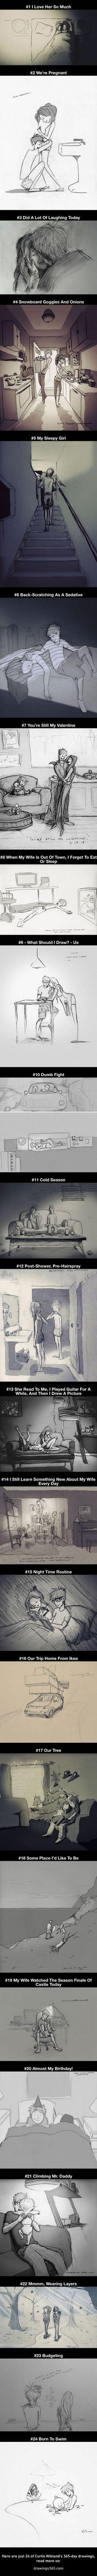 This Guy Illustrated Every Single Day He Spent With His Beloved Wife (24 Pics)…